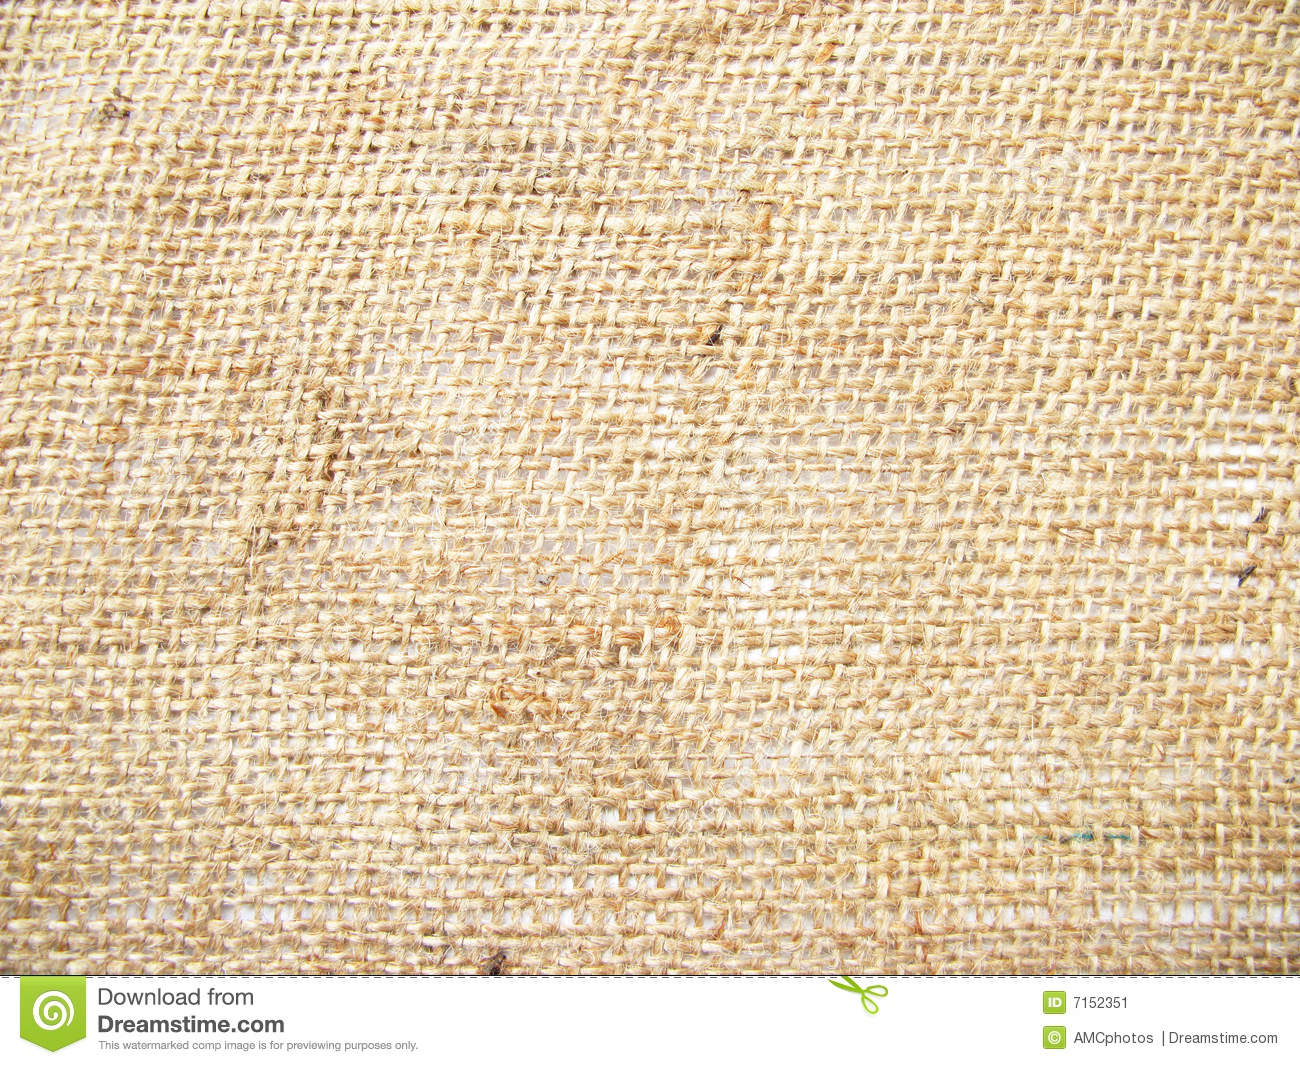 Linen Background Texture Free Stock Photos Download 9 467: Linen Texture Stock Image